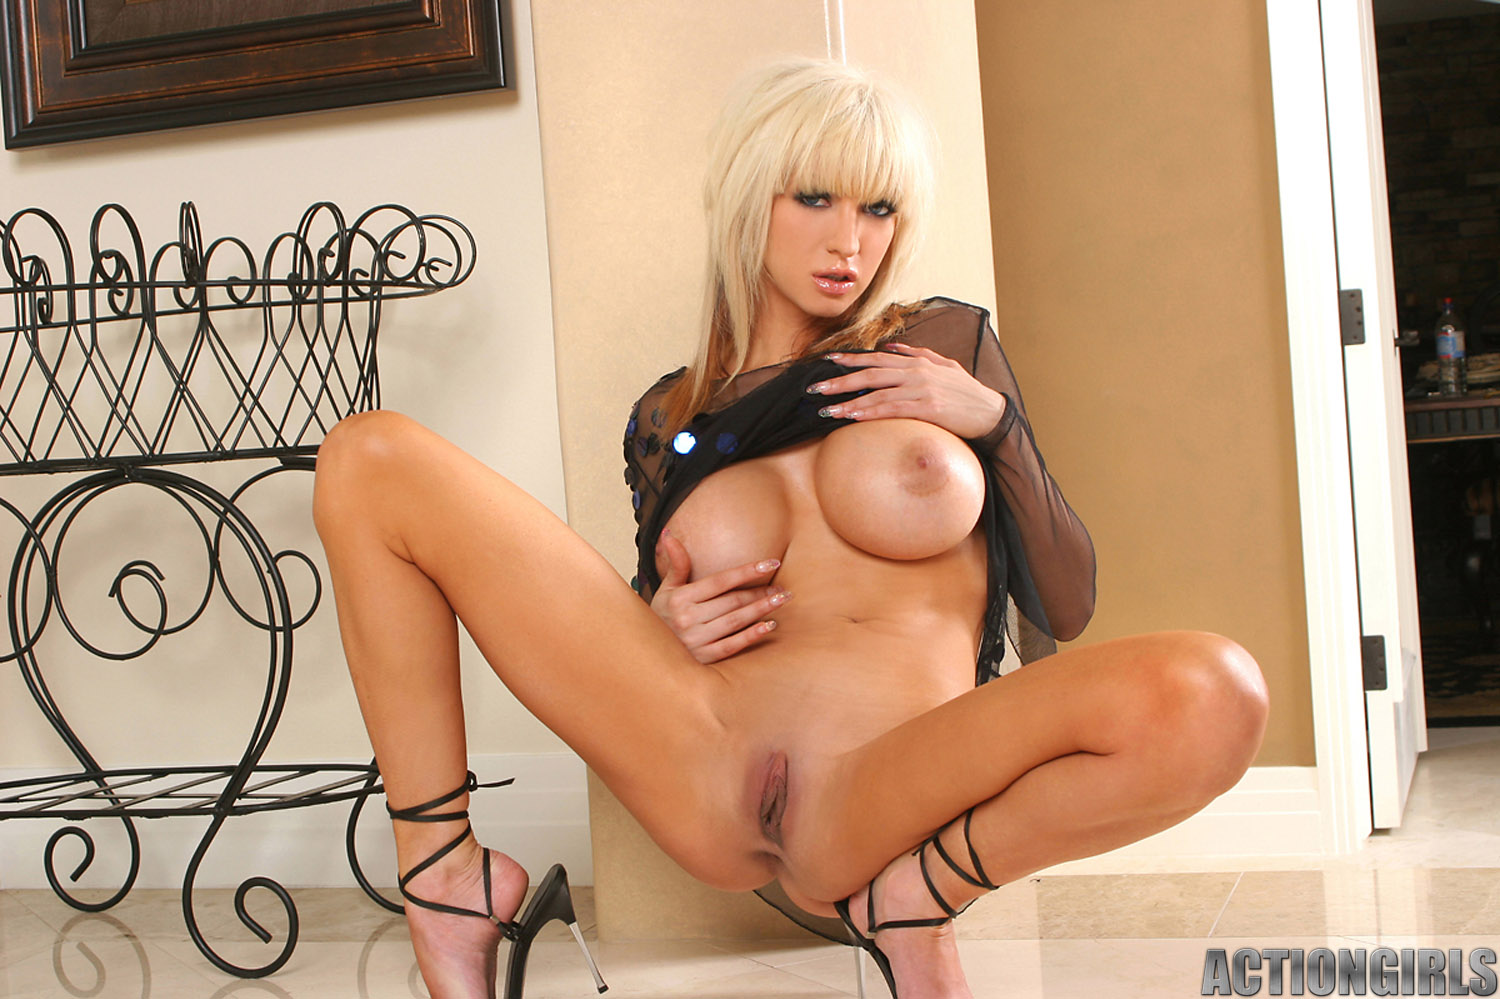 Jill Madison - Actiongirls 35333